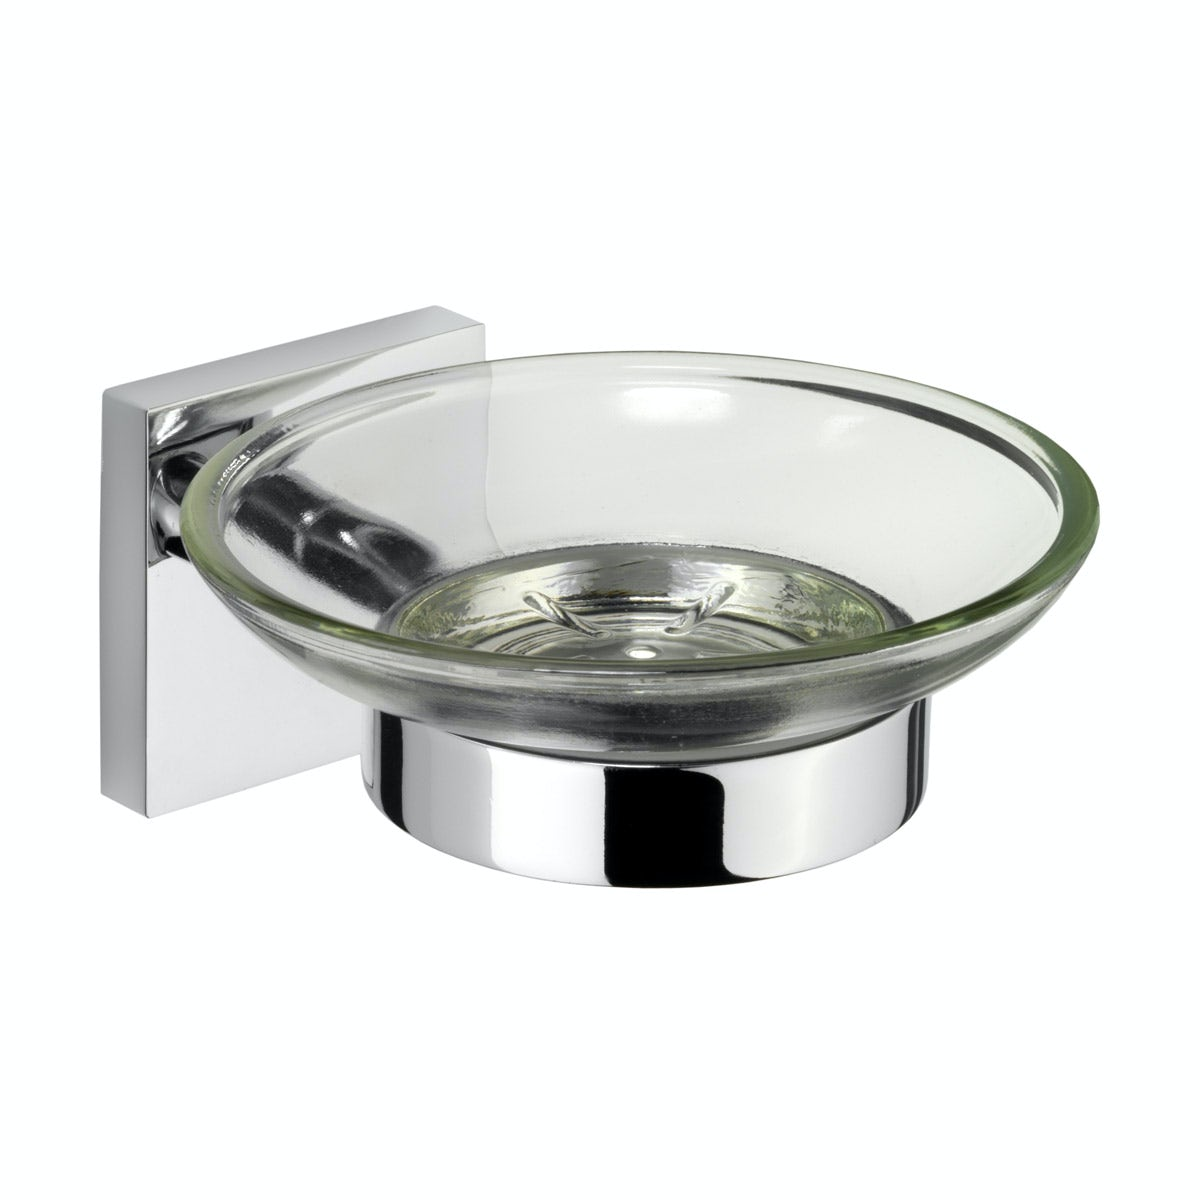 Croydex Chester soap dish & holder